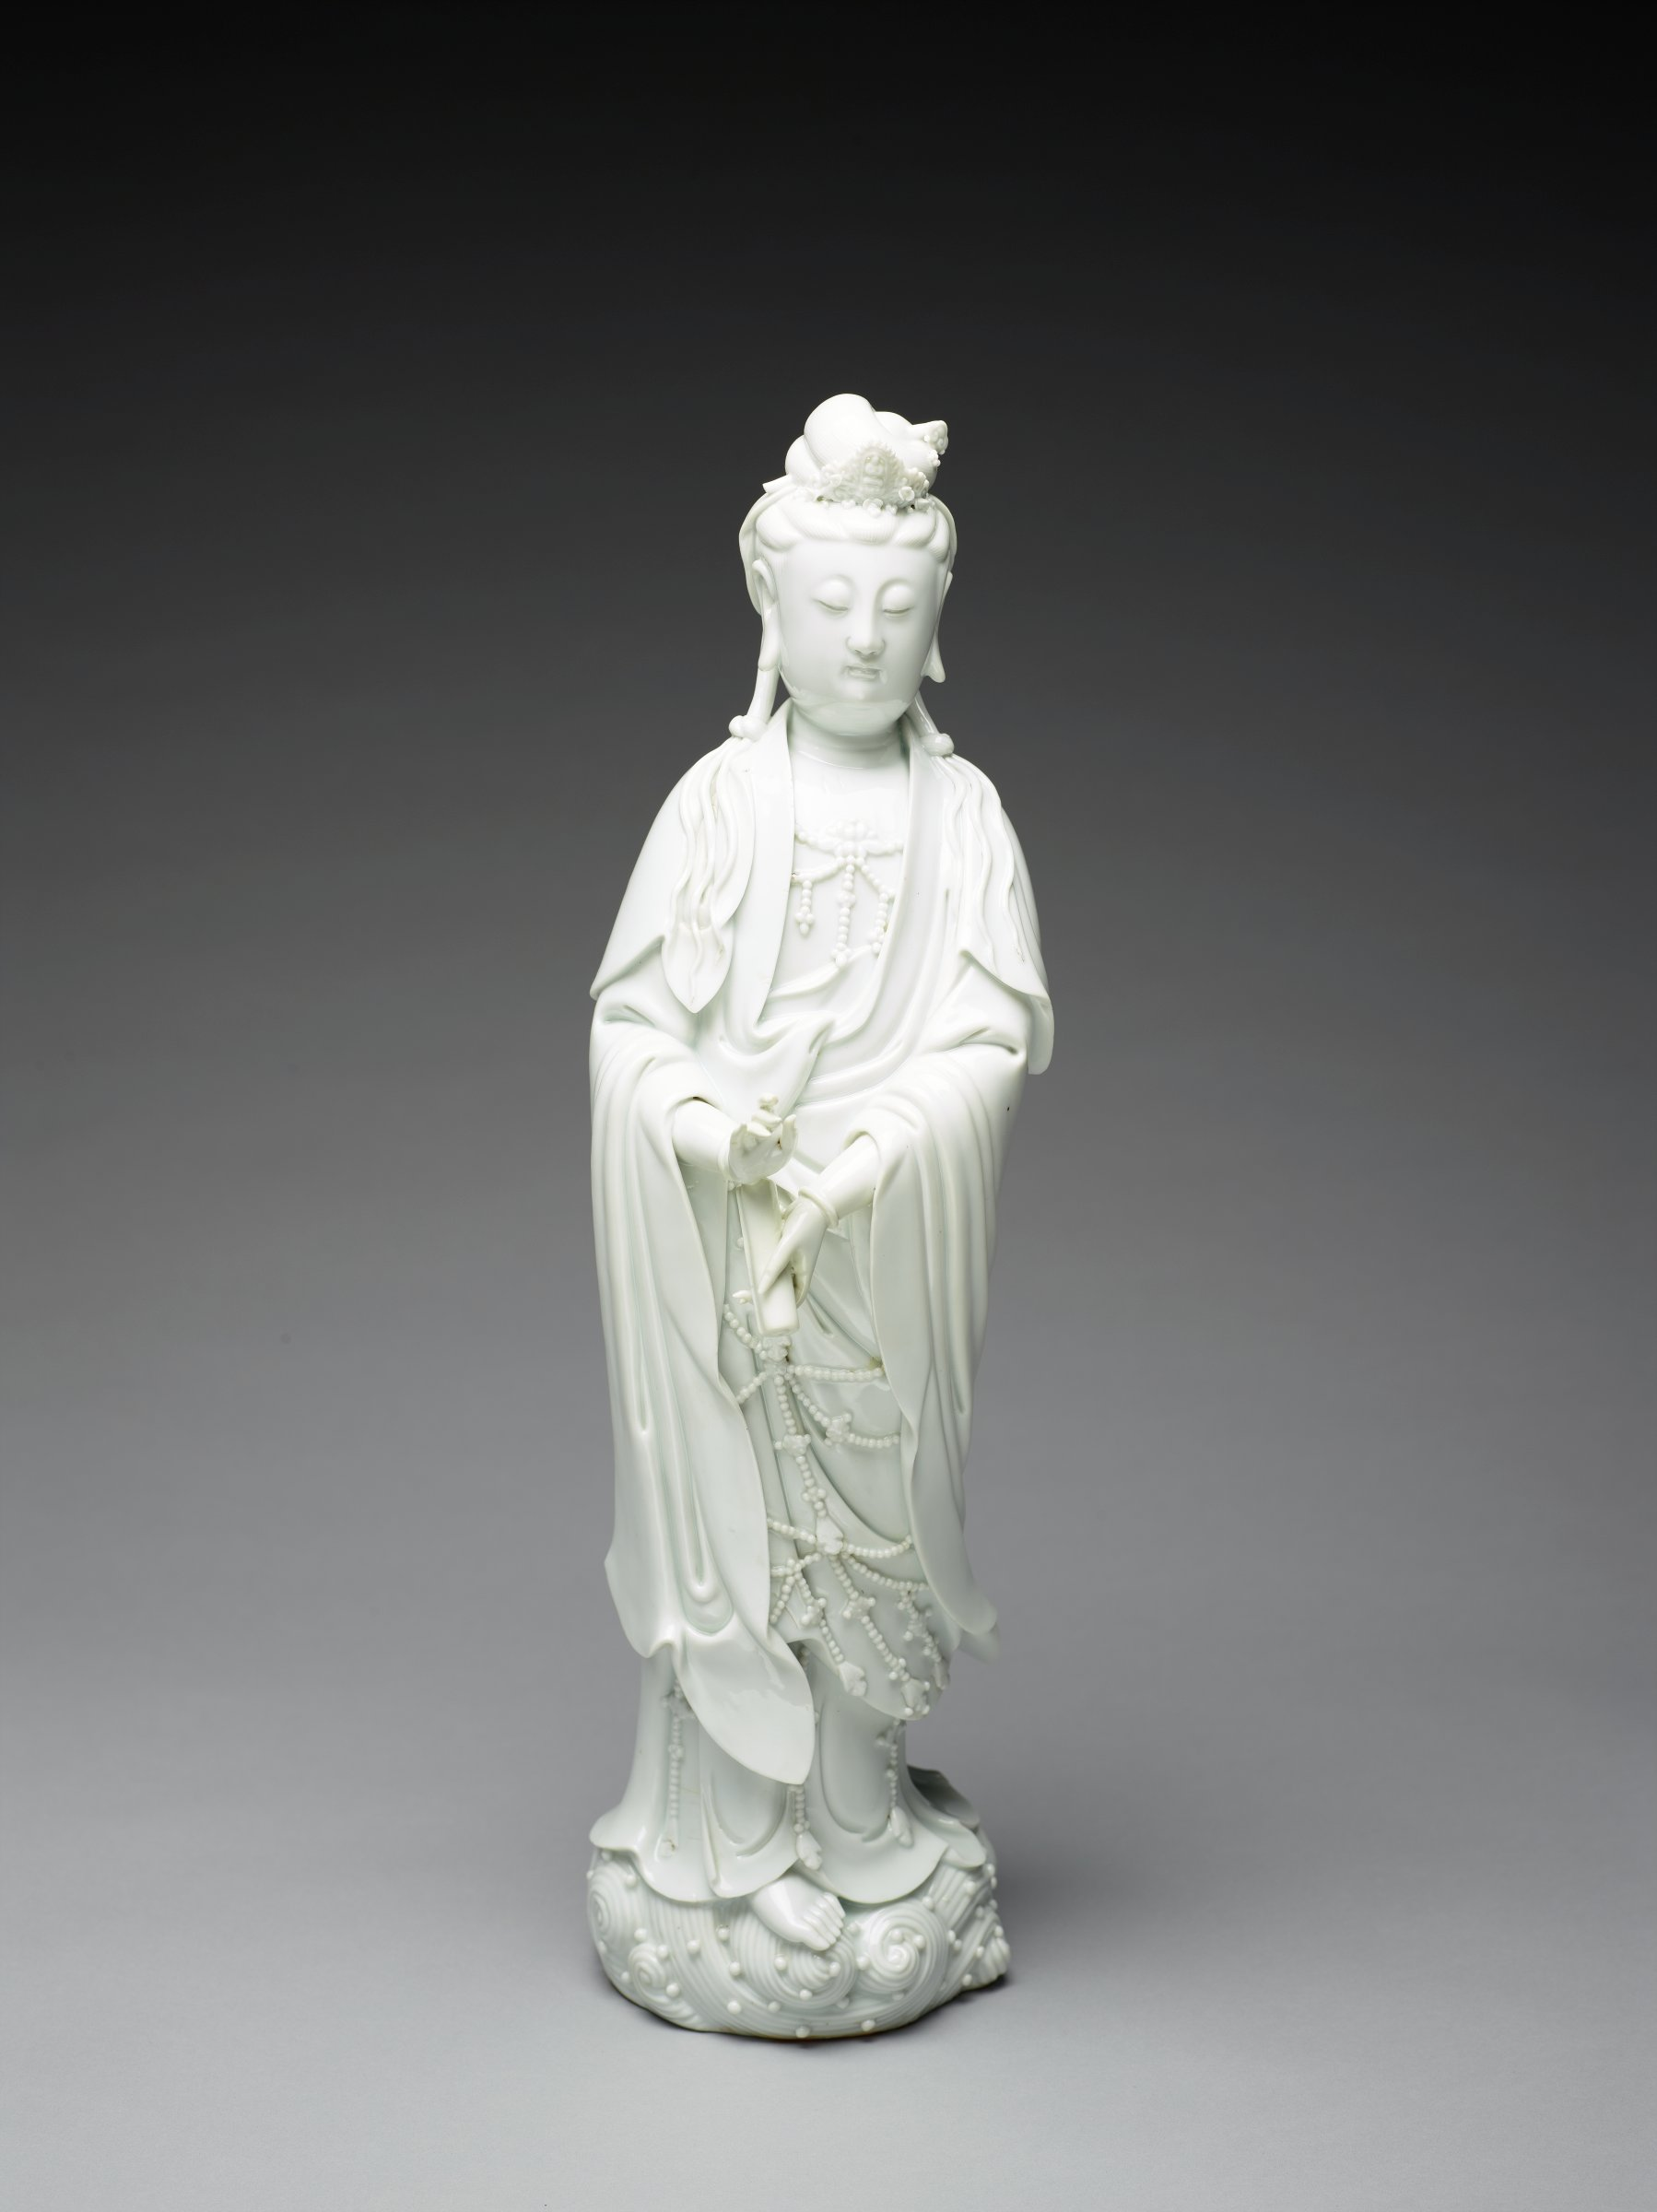 Delicate standing figure of Guanyin on waves. She holds a scroll and has heavy jewelry down her front.